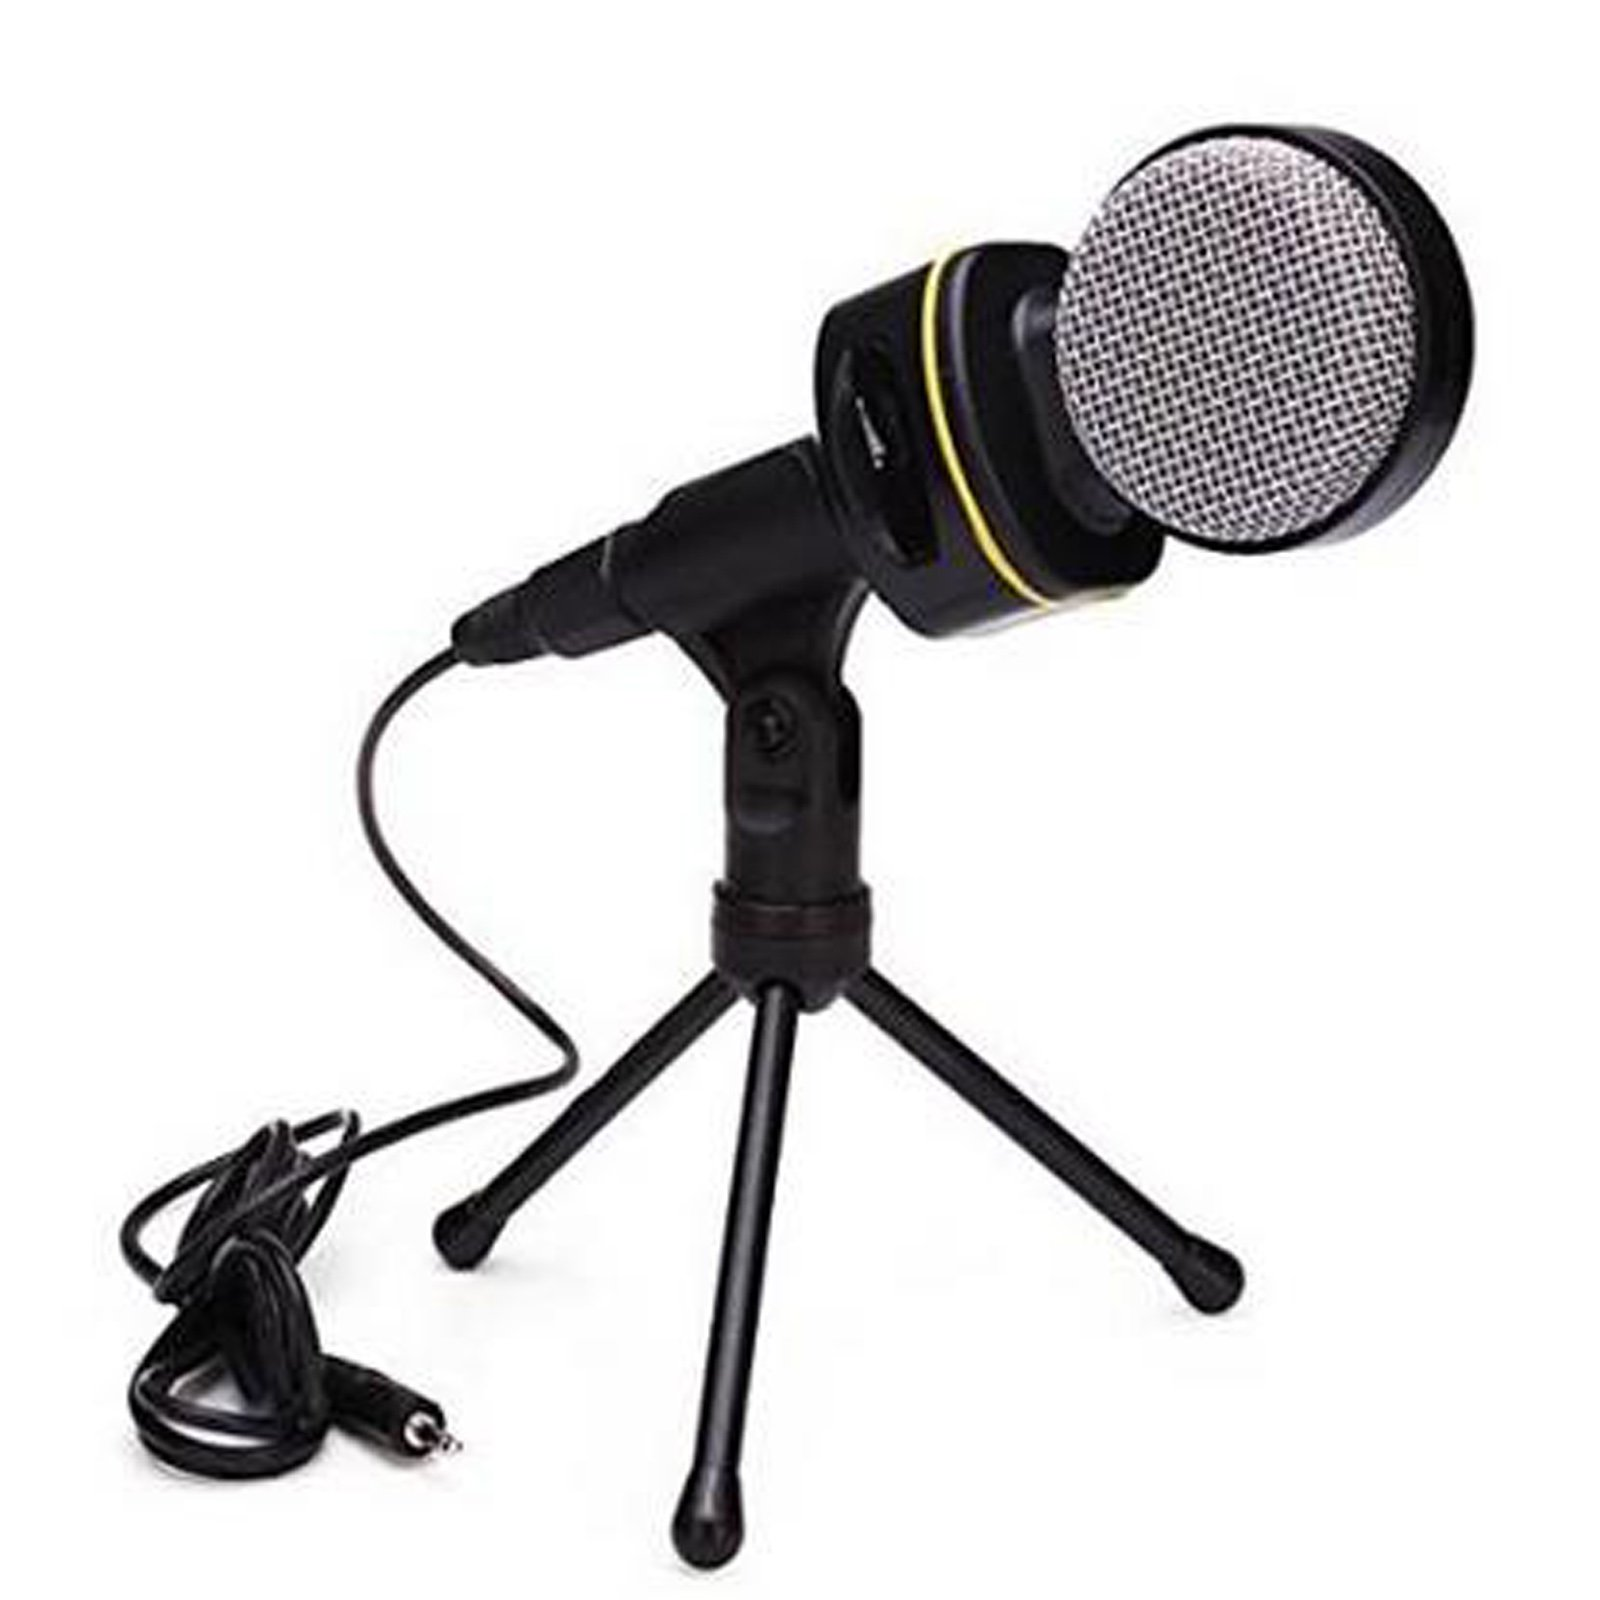 TopePop 3.5 Stereo Plug Professional Condenser Microphone Mic Audio Studio Sound Recording with Shock Mount For PC Computer Laptop Notebook Skype (SF-930)